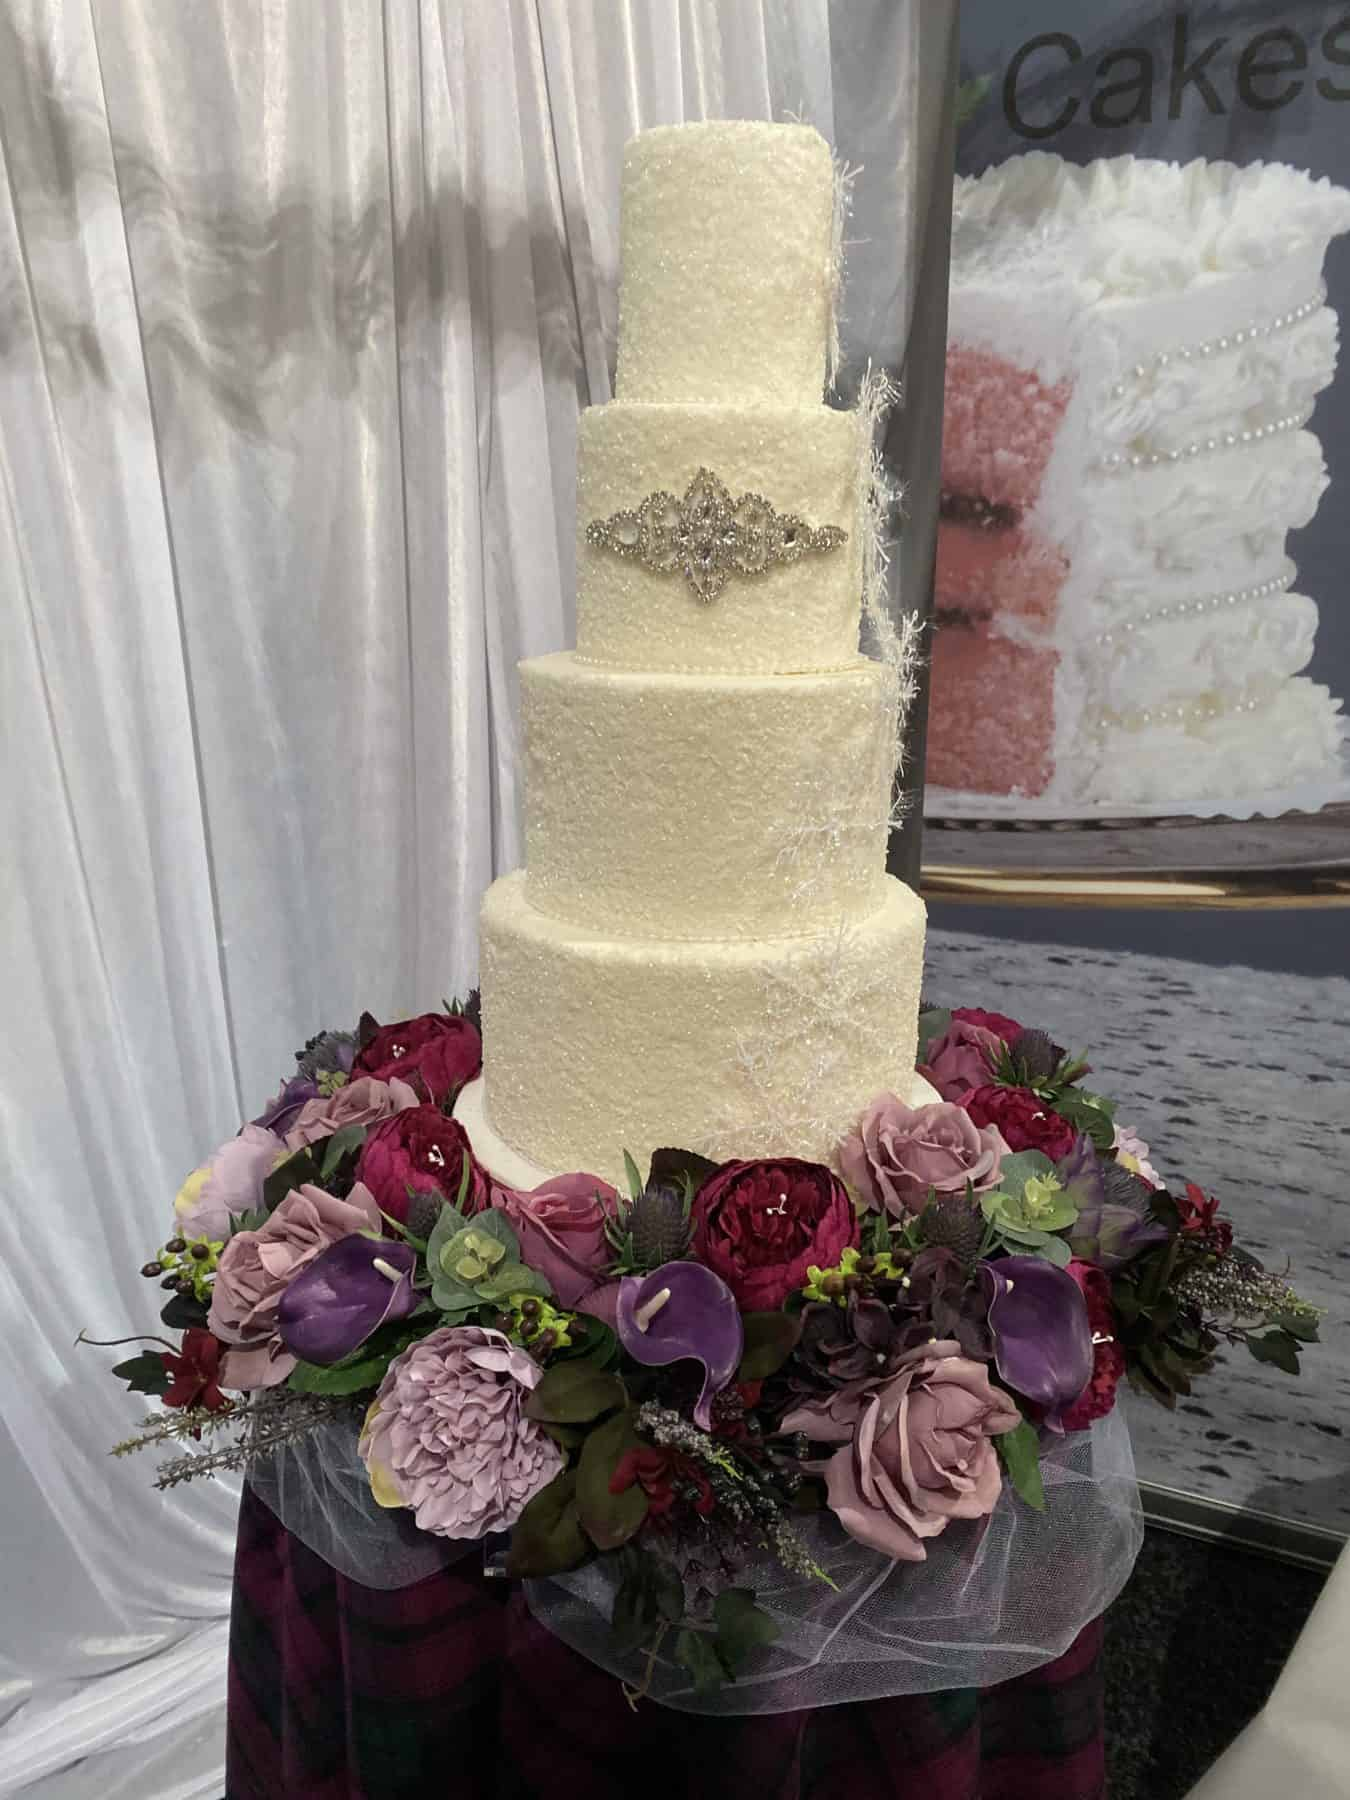 high-class-cakes-scottish-borders-wedding-cake-floral-bespoke-winter-design